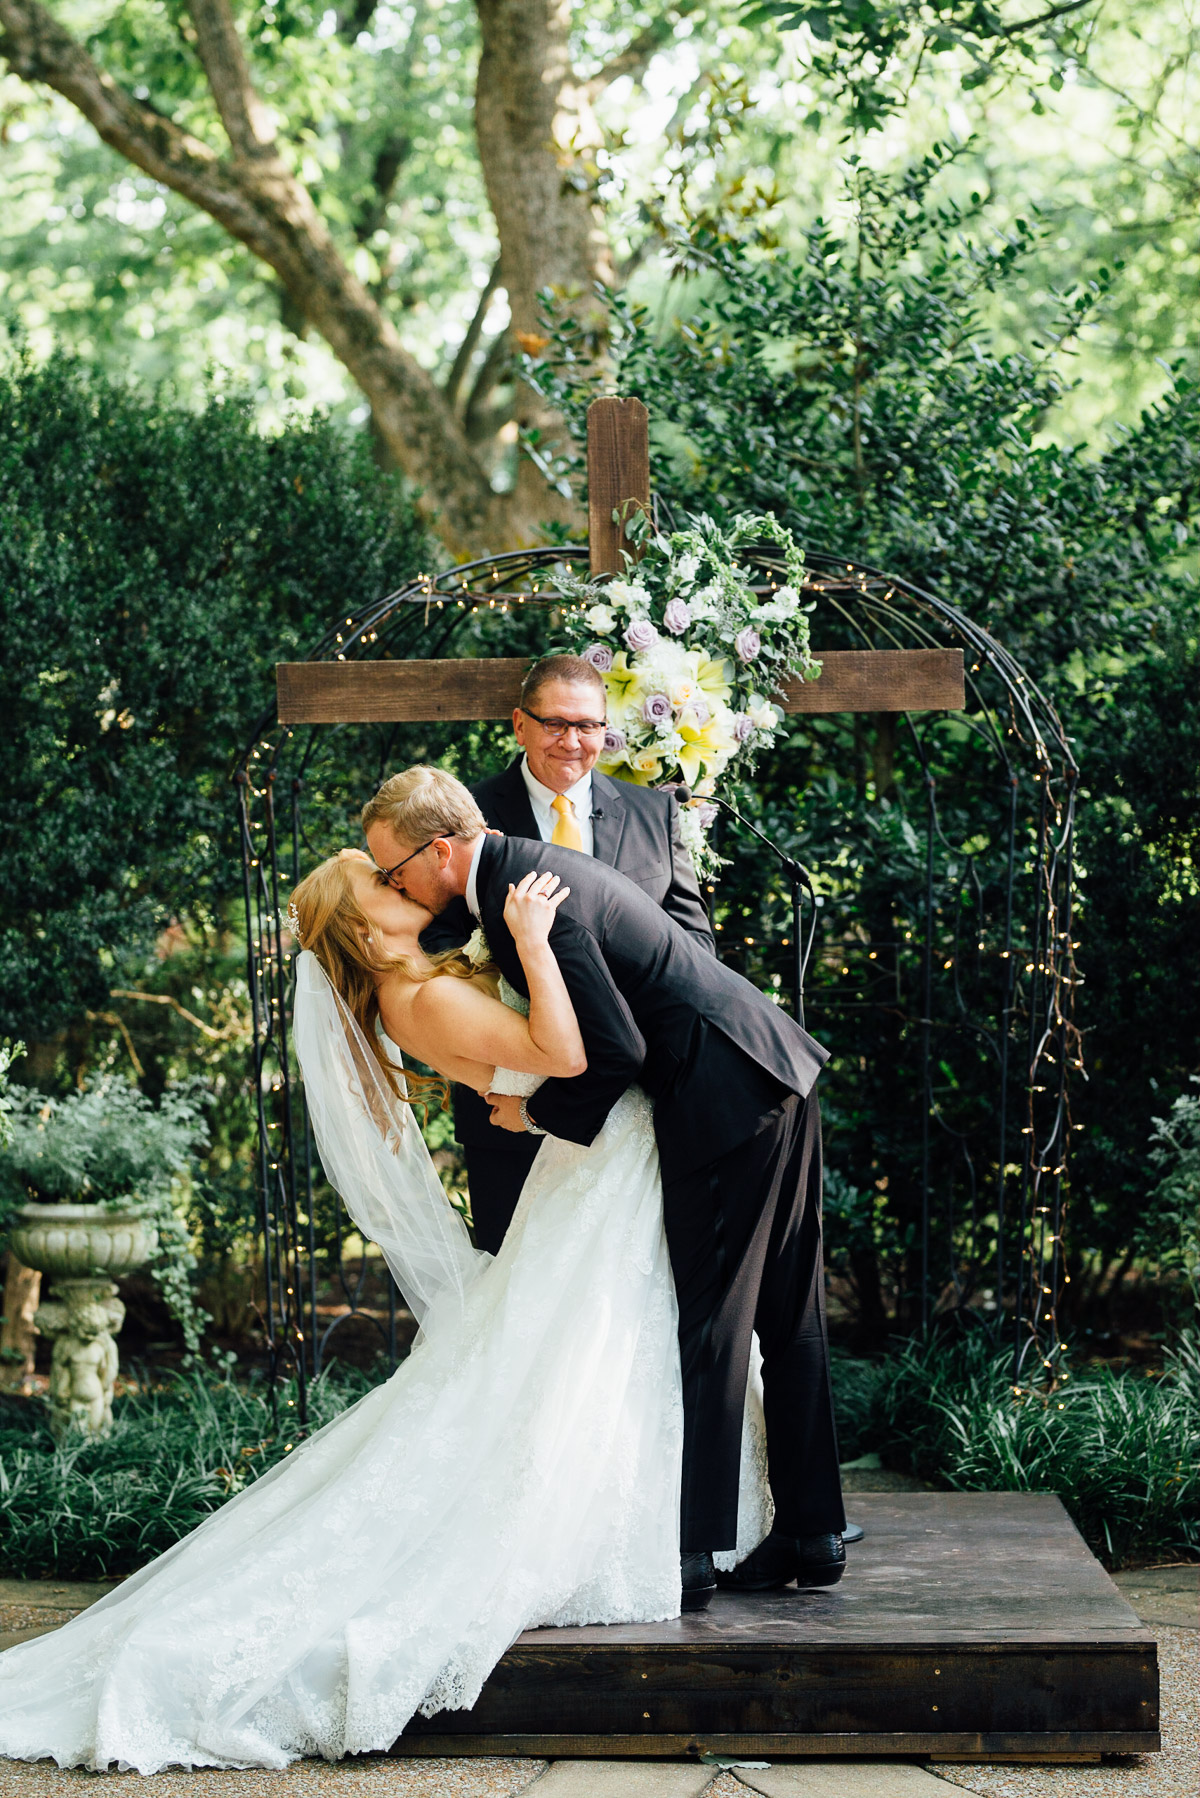 riverwood-mansion-wedding-kiss Riverwood Mansion Wedding | Ashley and Kirk | Nashville, TN